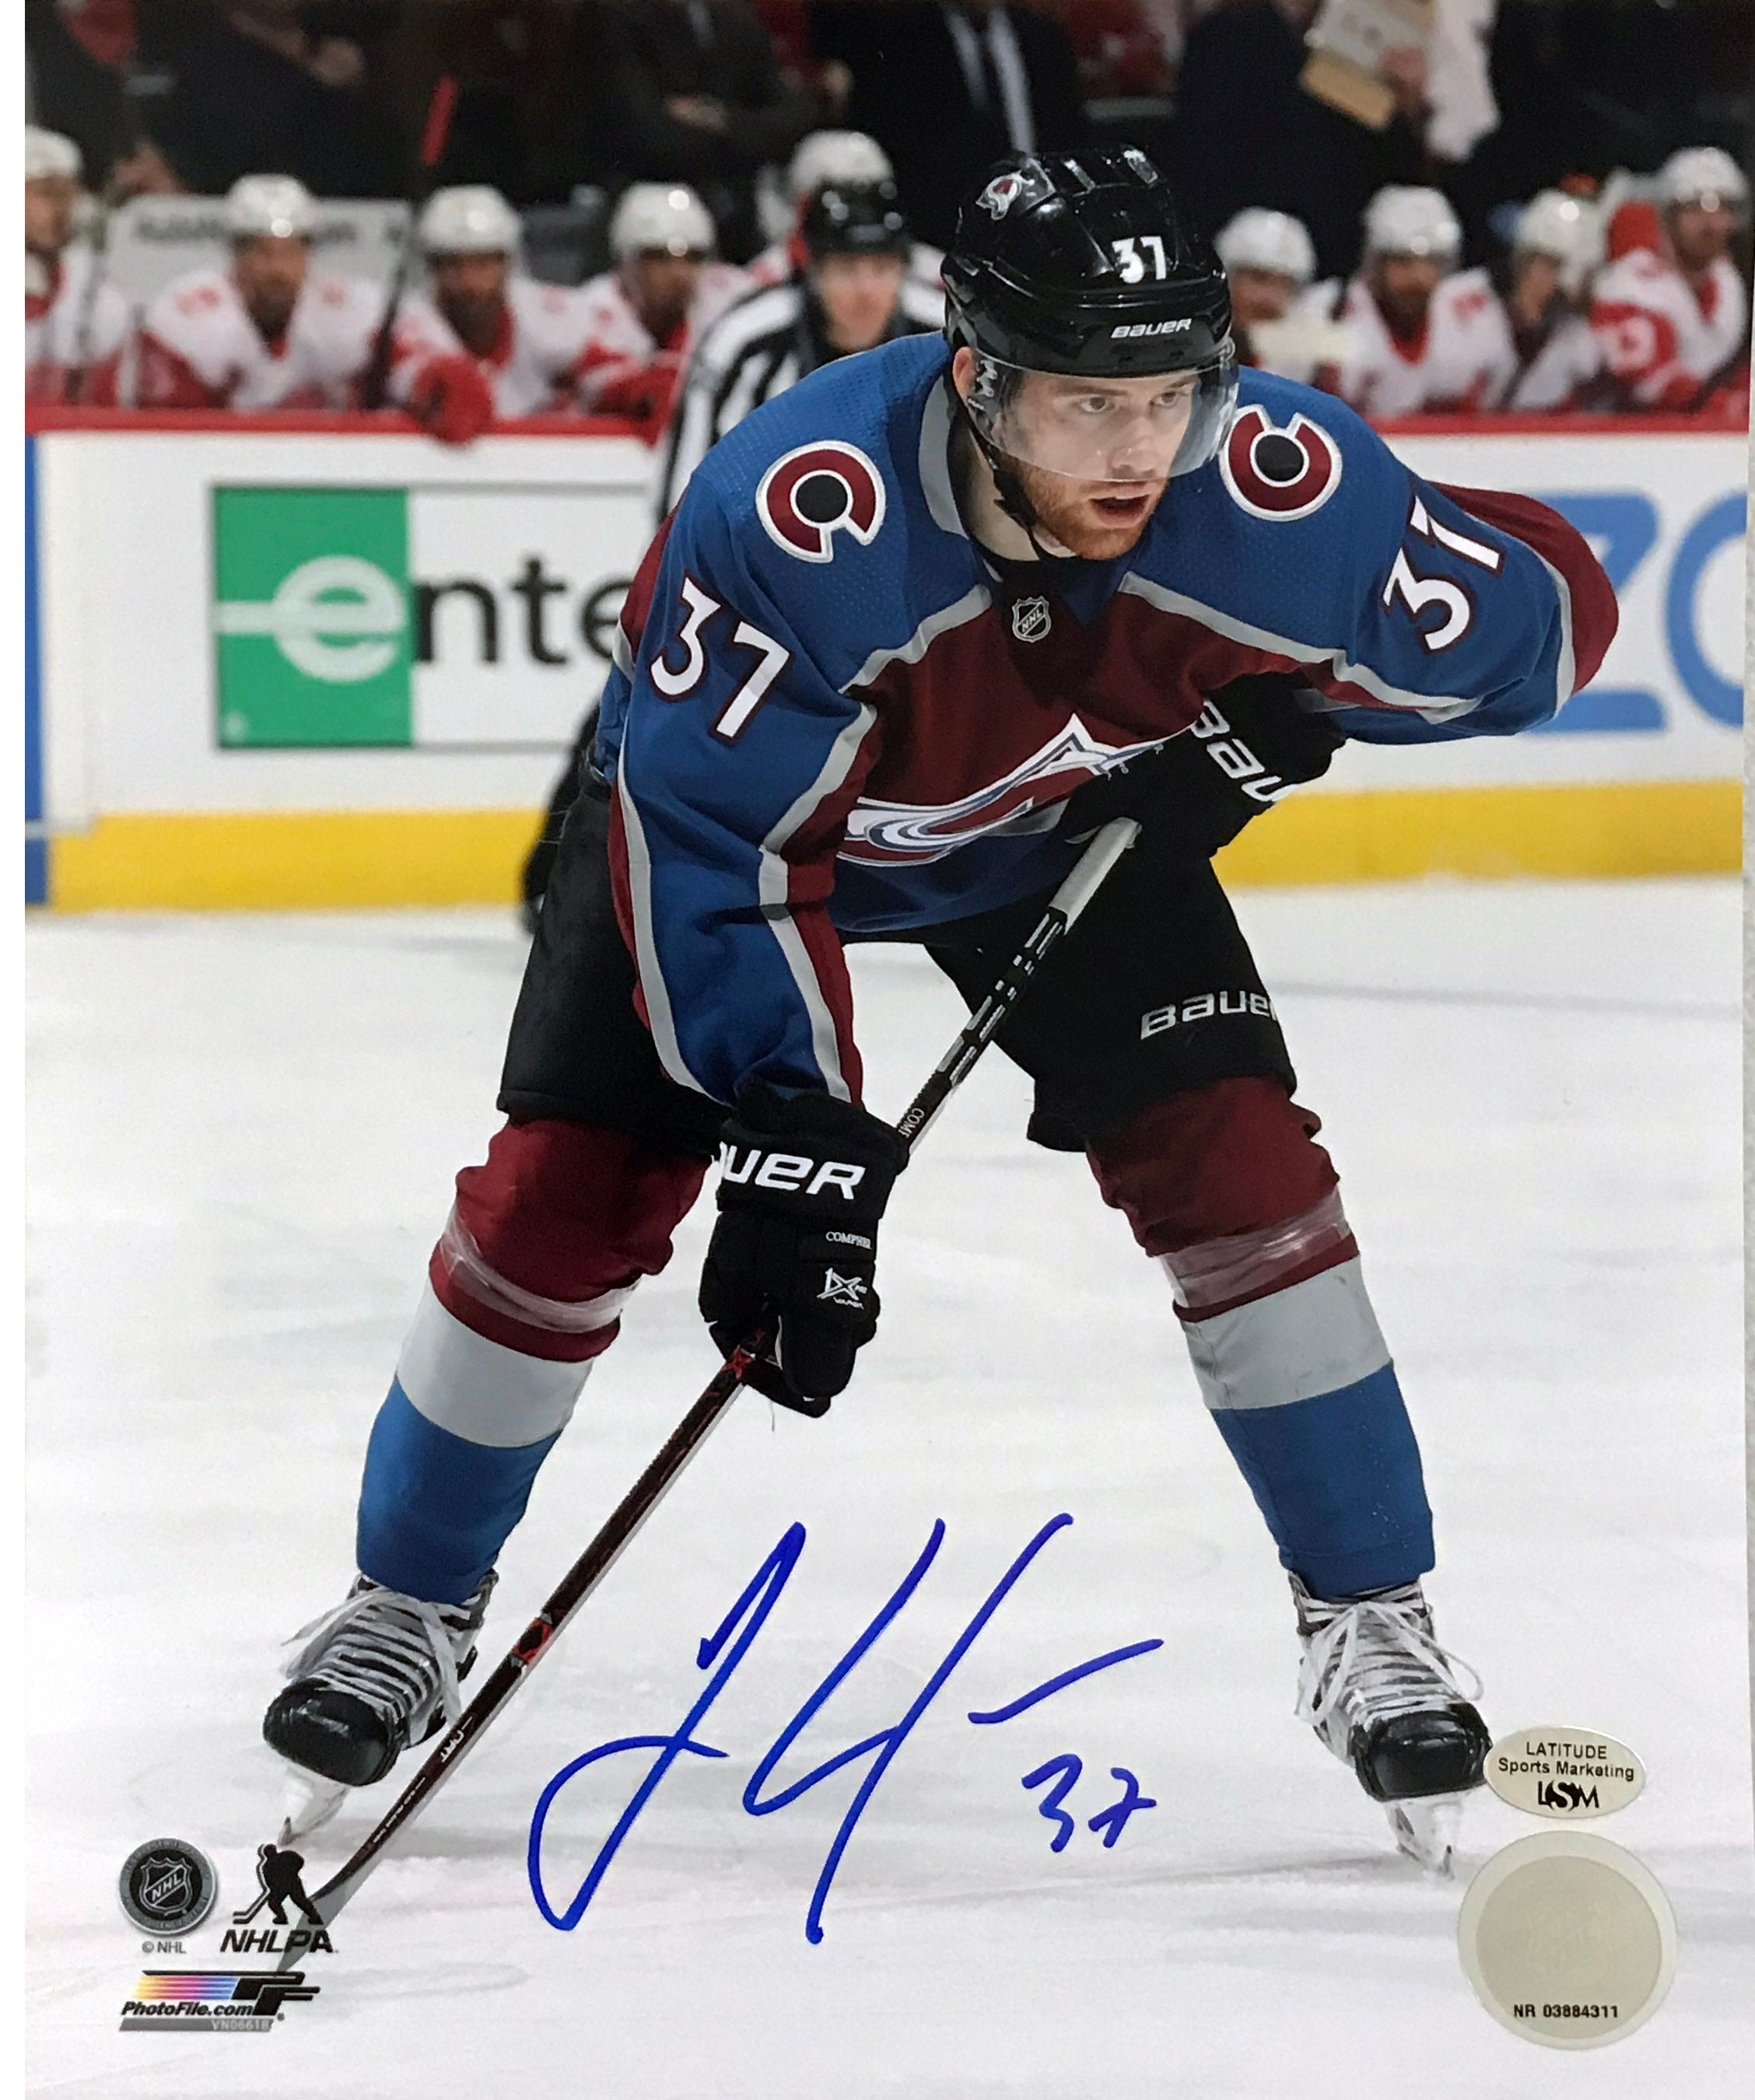 J.T. Compher Signed 8x10 Photo - Latitude Sports Marketing